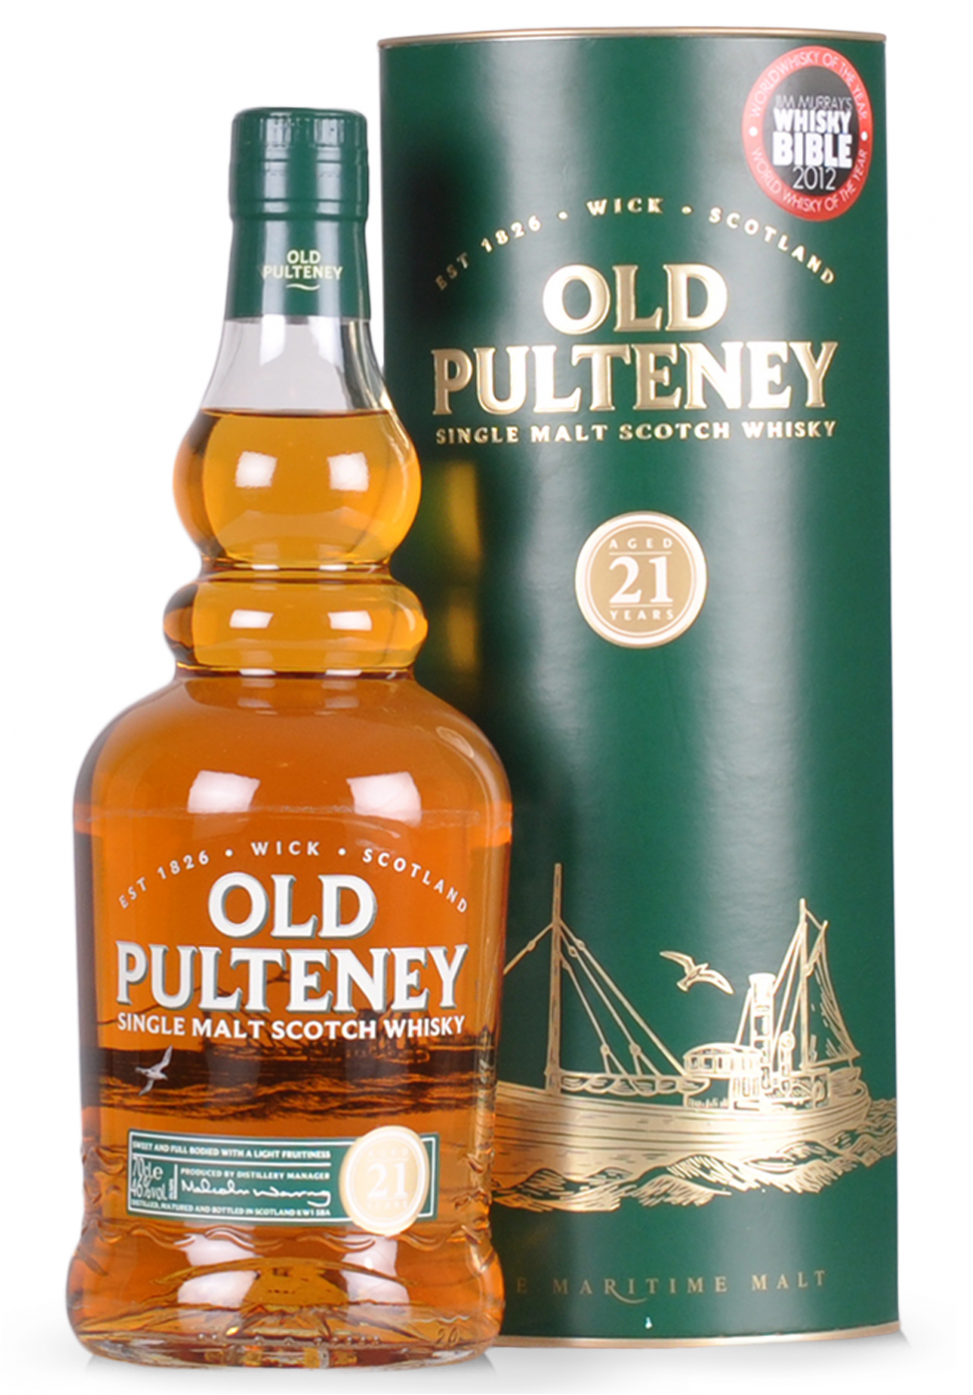 Whisky Old Pulteney, Single Malt Scotch 21 ani, (0.7L)